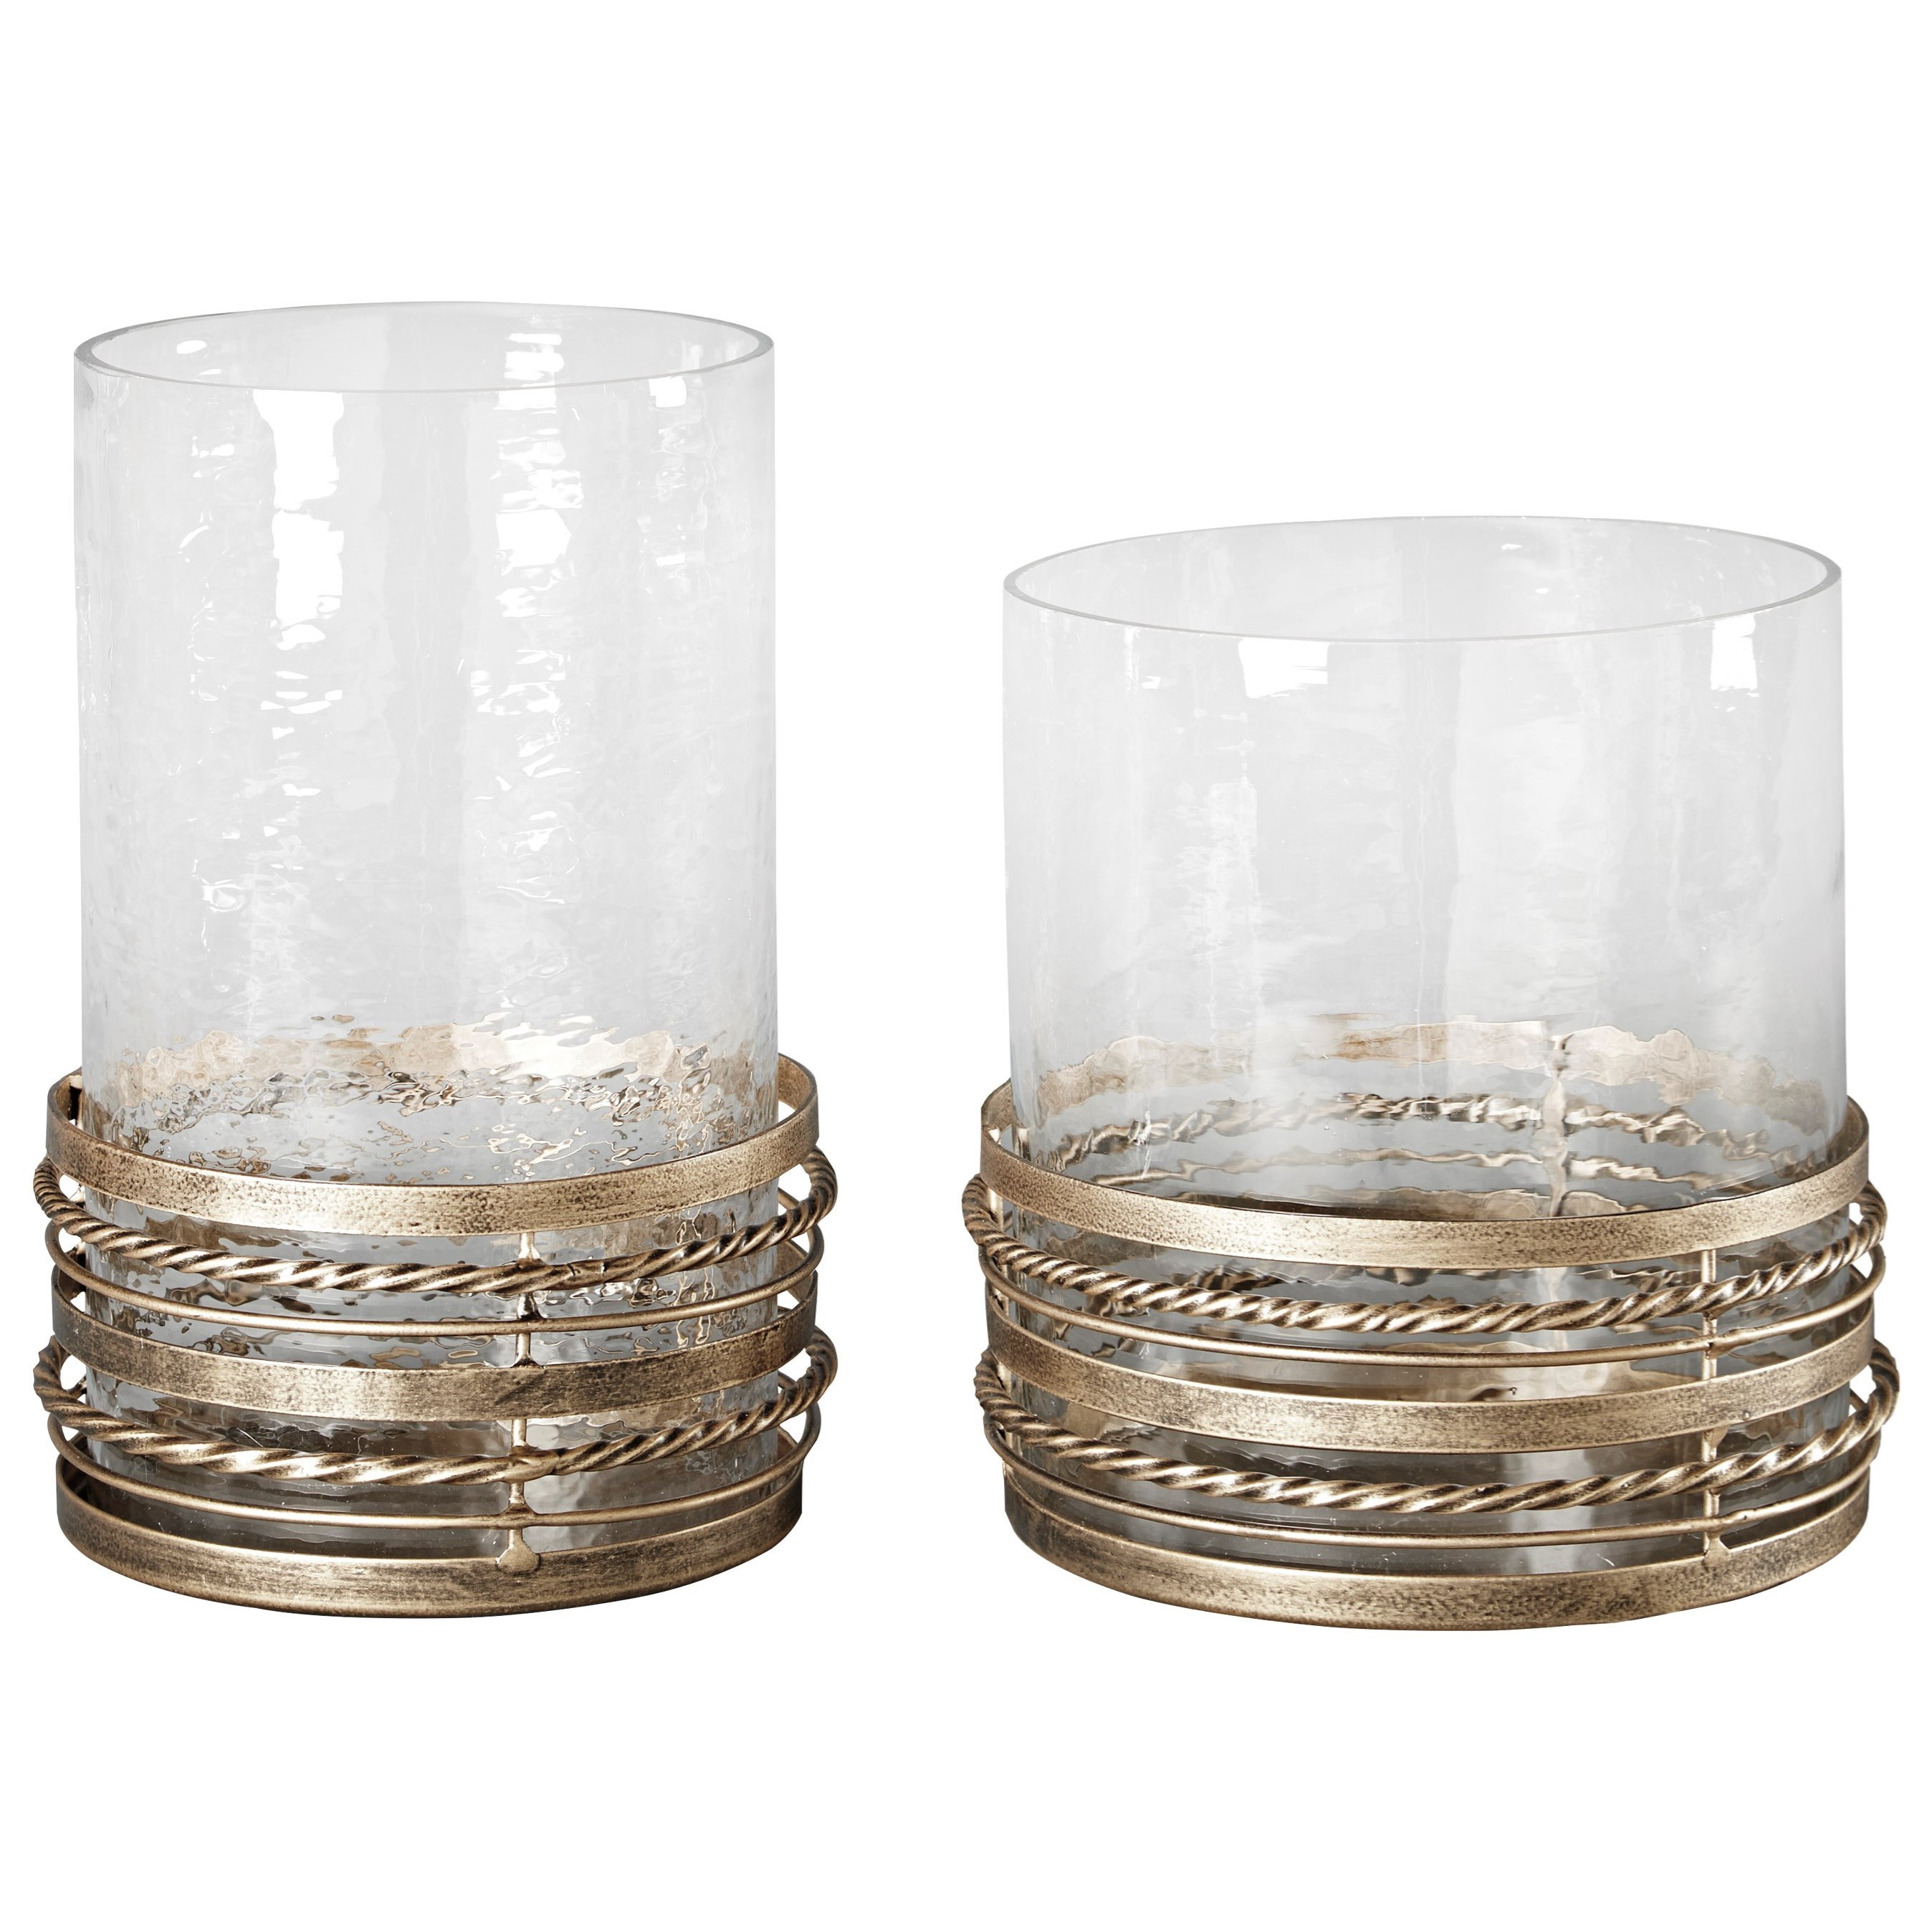 Accents Obaida - Antique Gold Finish Candle Holders by Ashley Furniture Signature Design at Del Sol Furniture